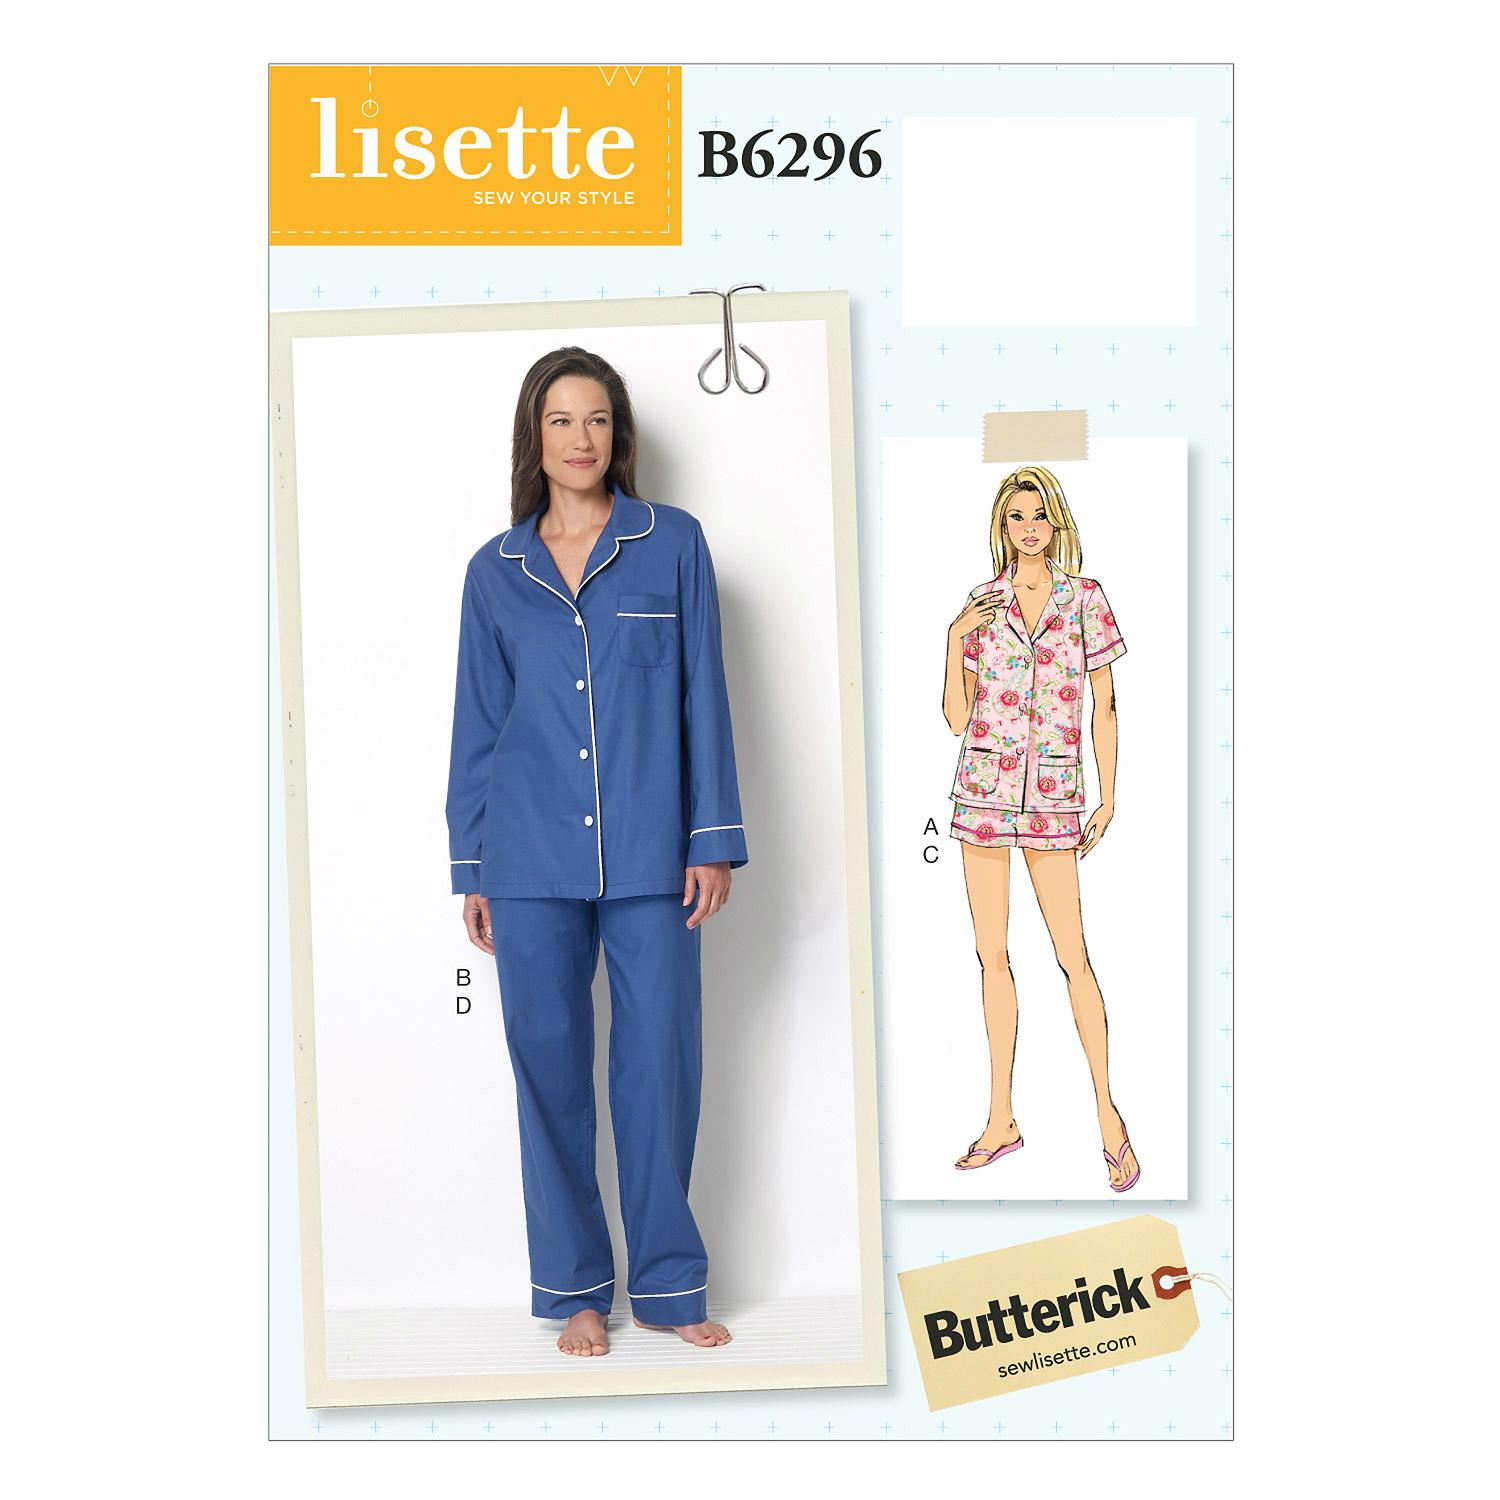 Butterick B6296 Misses' Top, Shorts and Pants